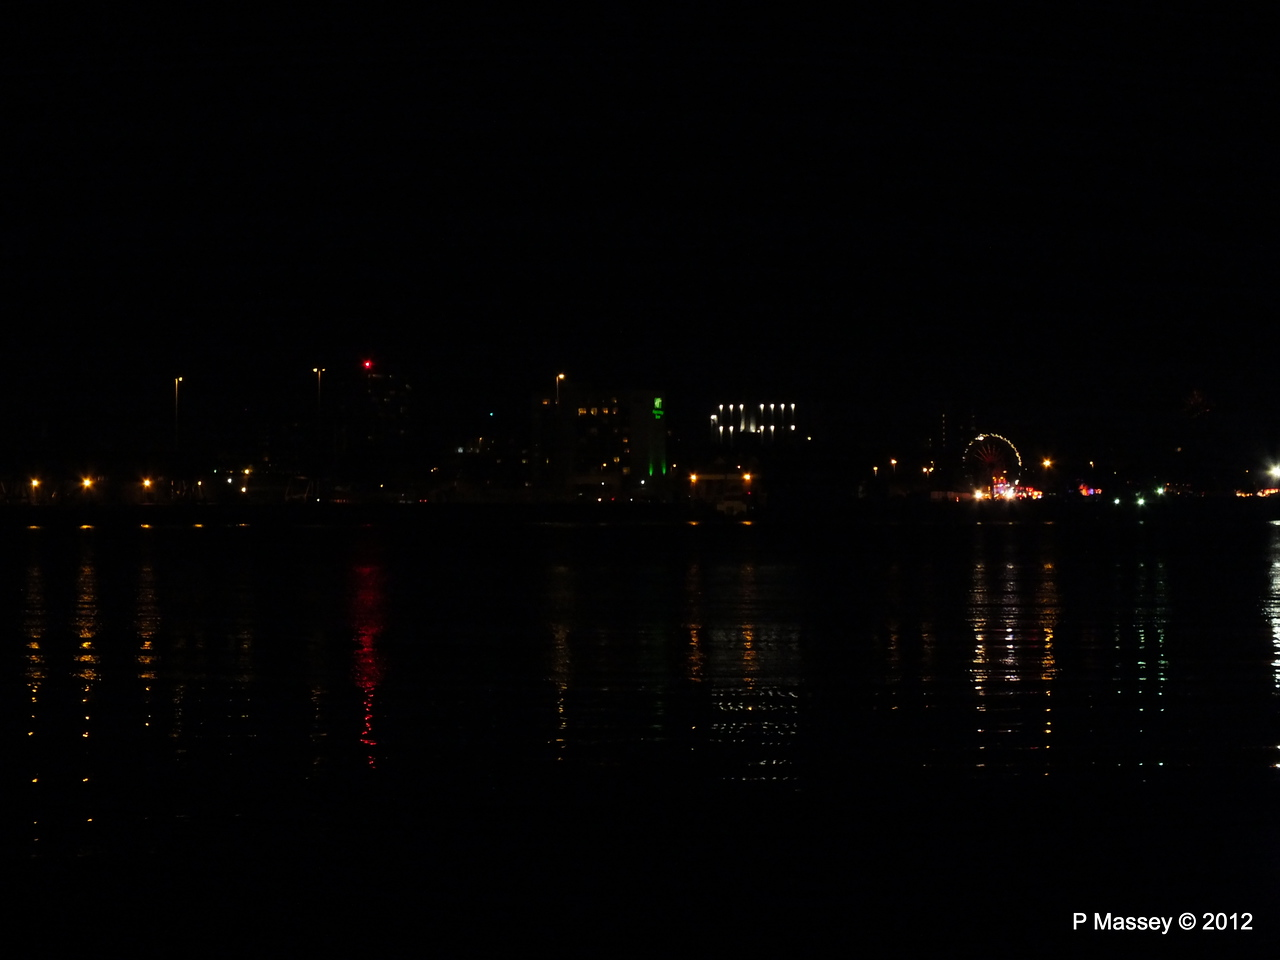 Mayflower Park at night from Marchwood PDM 03-11-2012 20-29-26